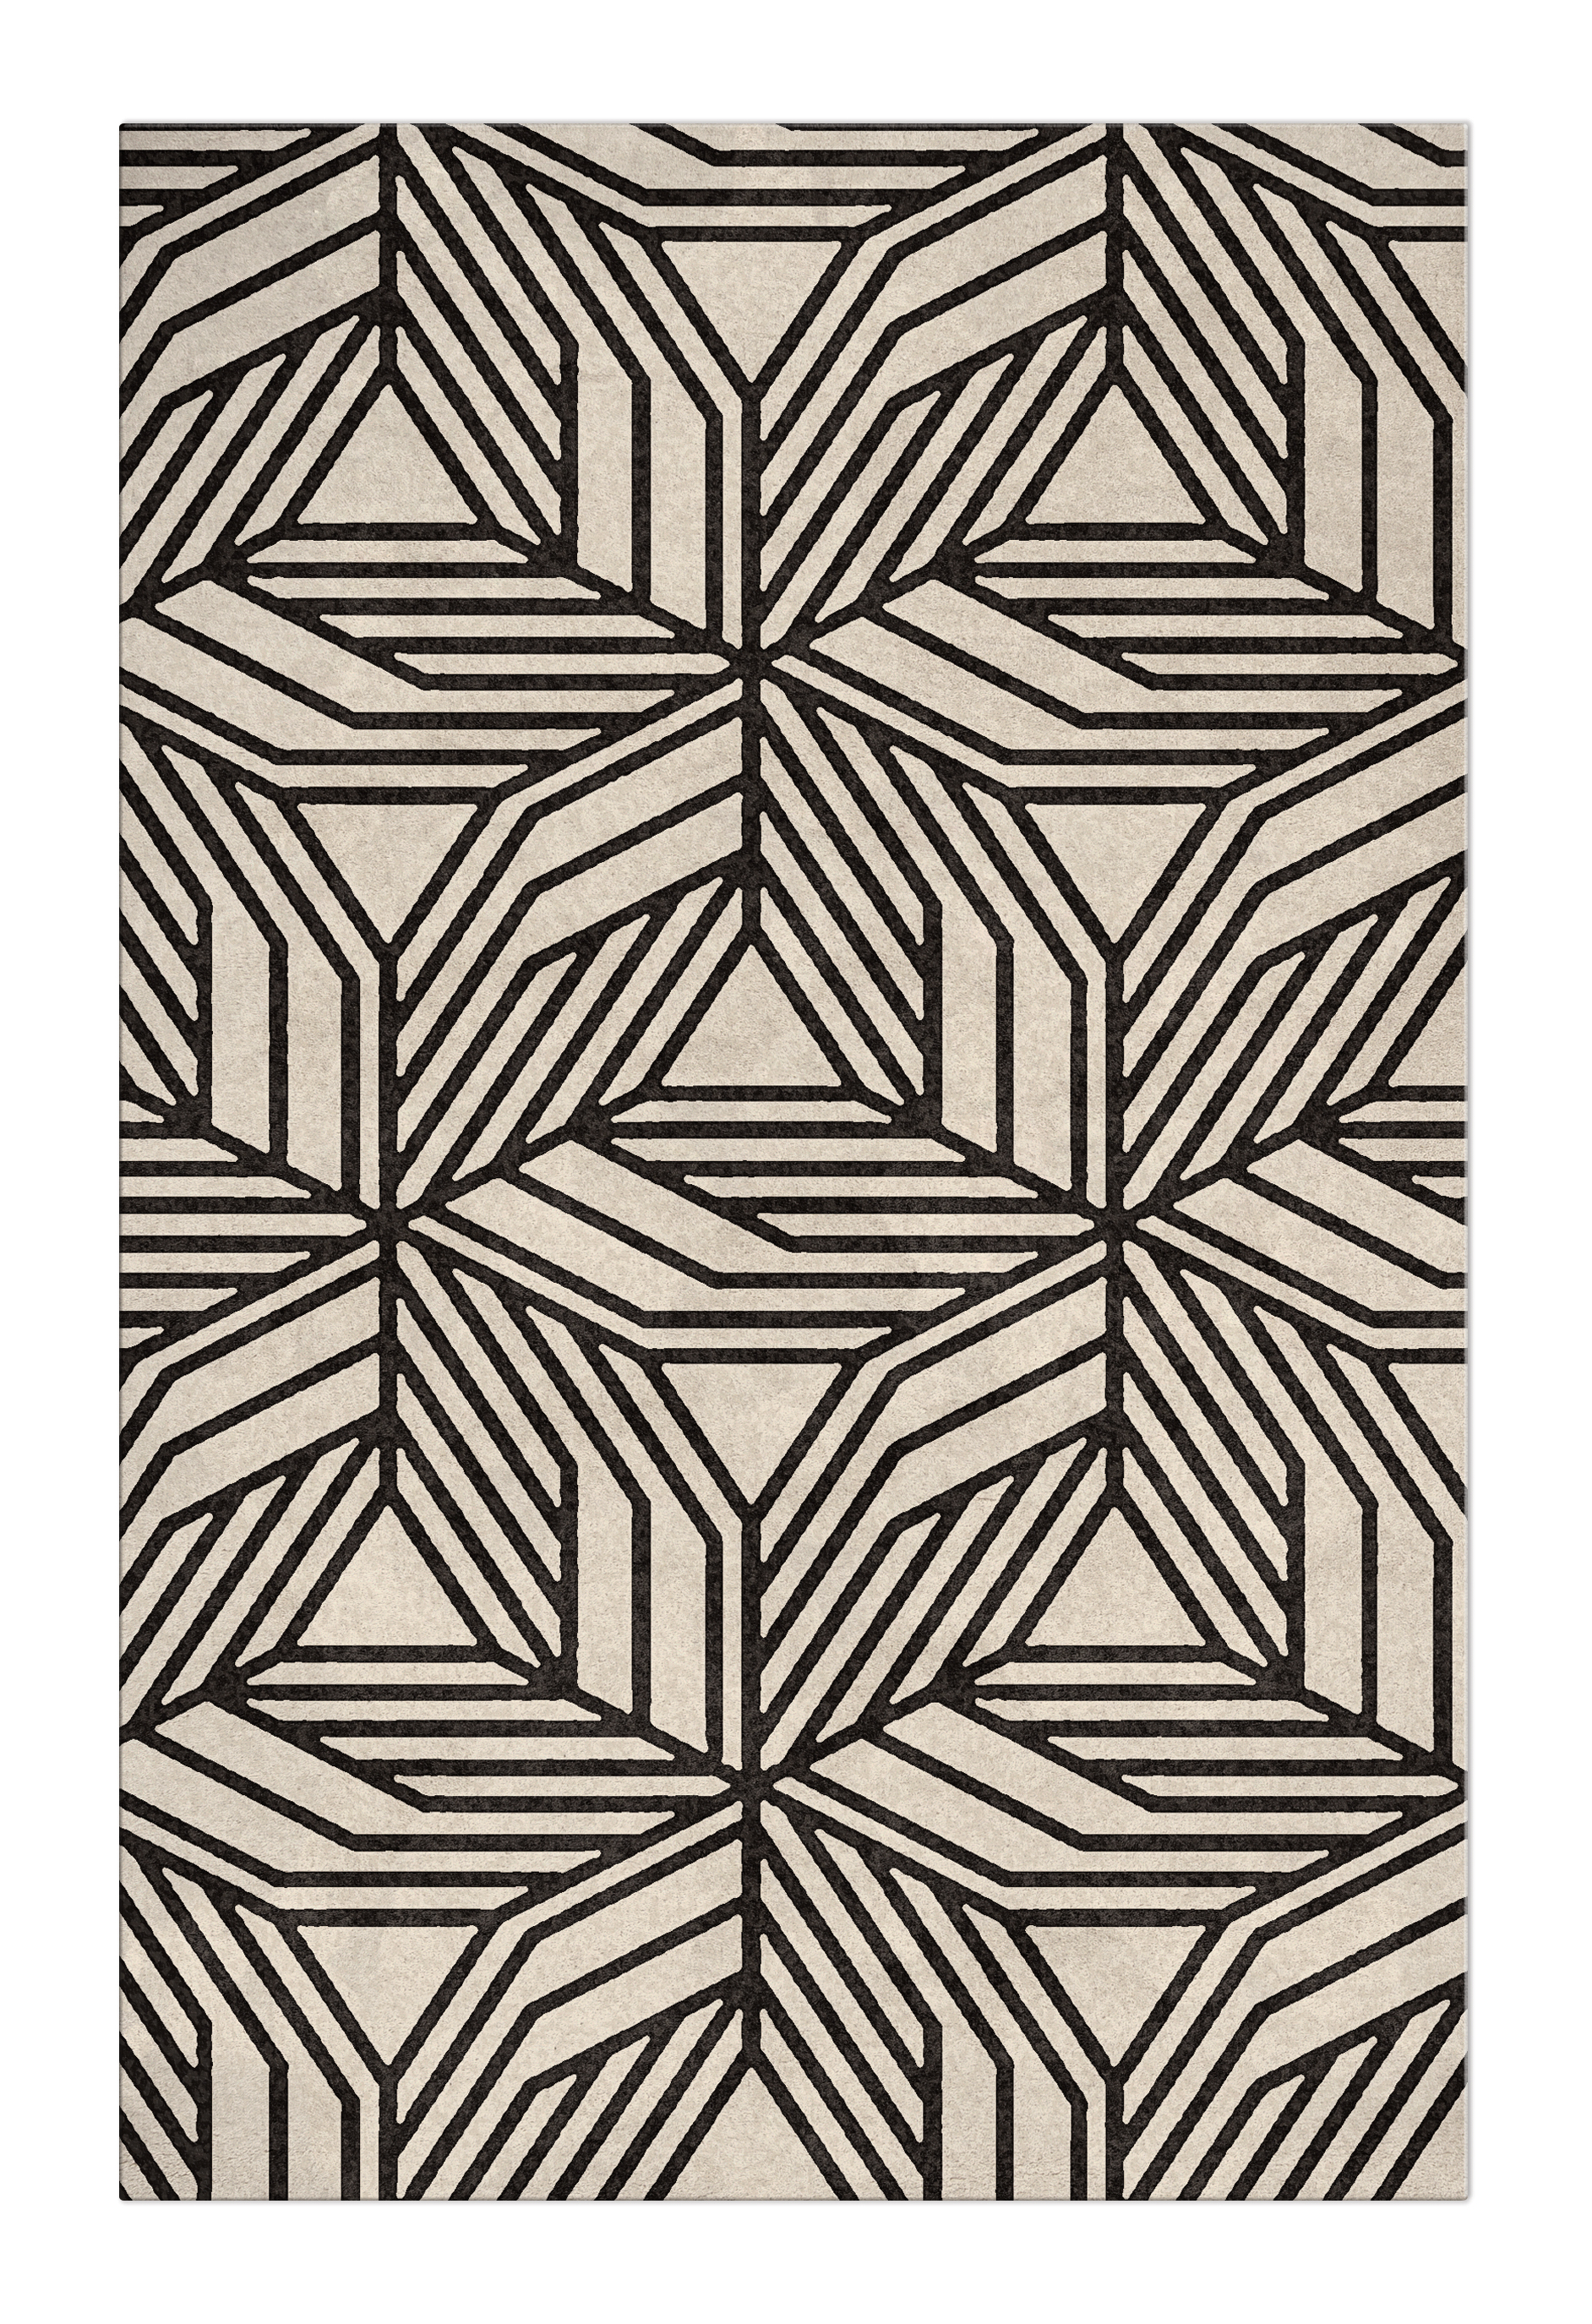 And the Brabbu Piece of the Week is: Cauca Rug!